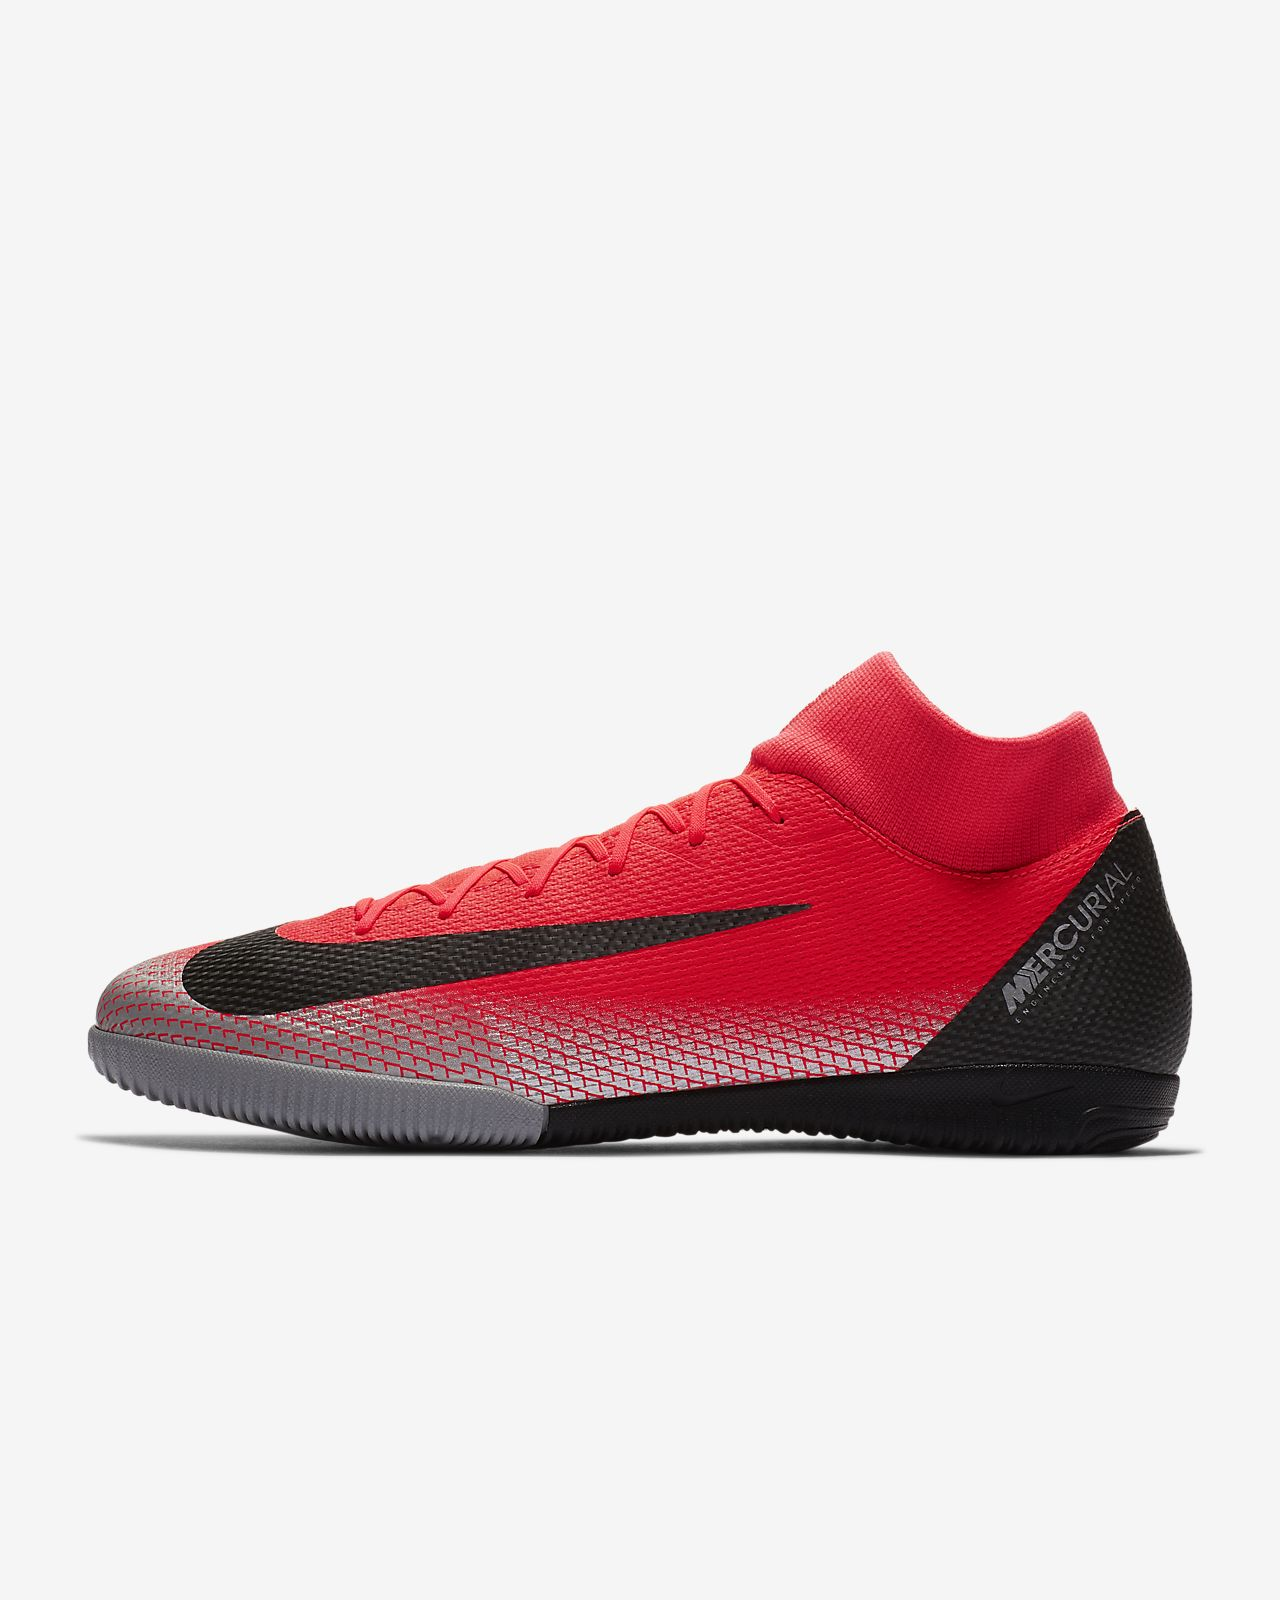 Chaussure De Academy Superfly Nike Vi En Salle Mercurialx Football ASrqA